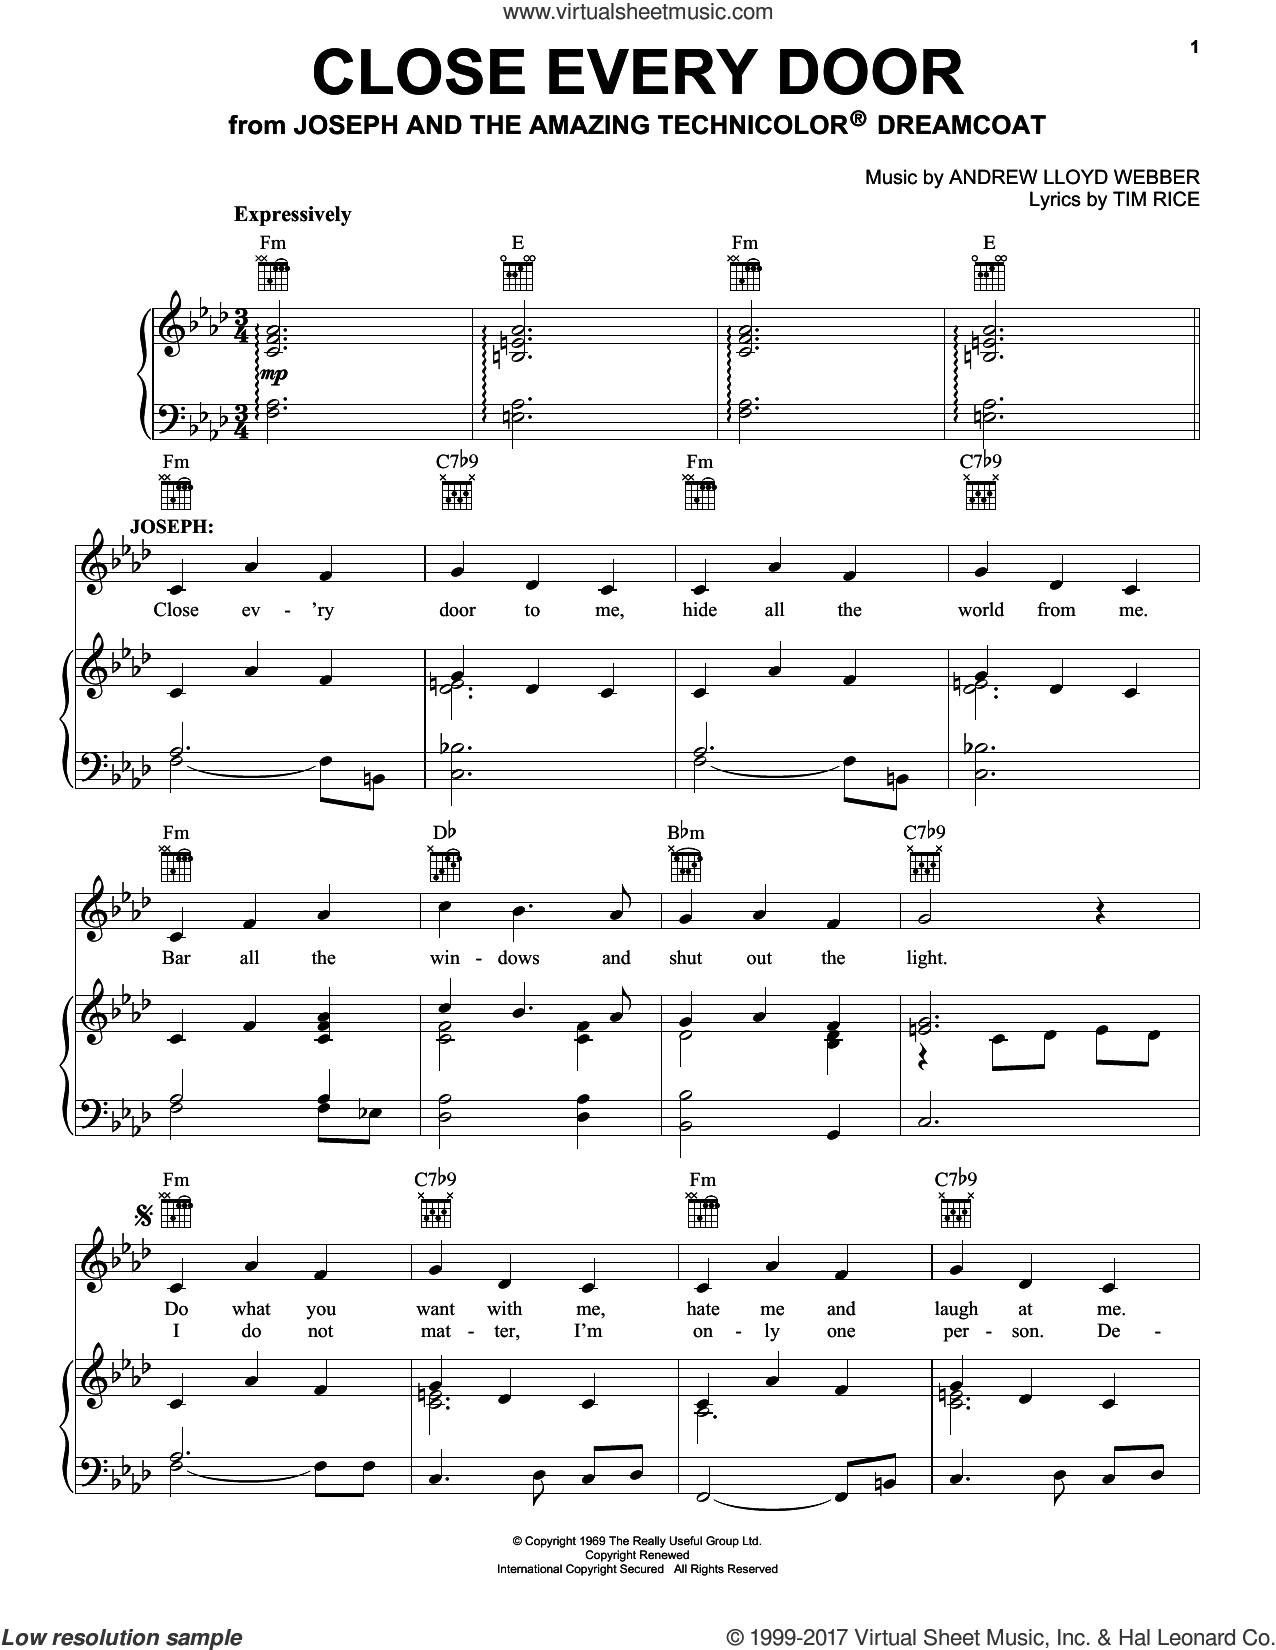 Close Every Door sheet music for voice, piano or guitar by Andrew Lloyd Webber, Joseph And The Amazing Technicolor Dreamcoat (Musical) and Tim Rice, intermediate skill level